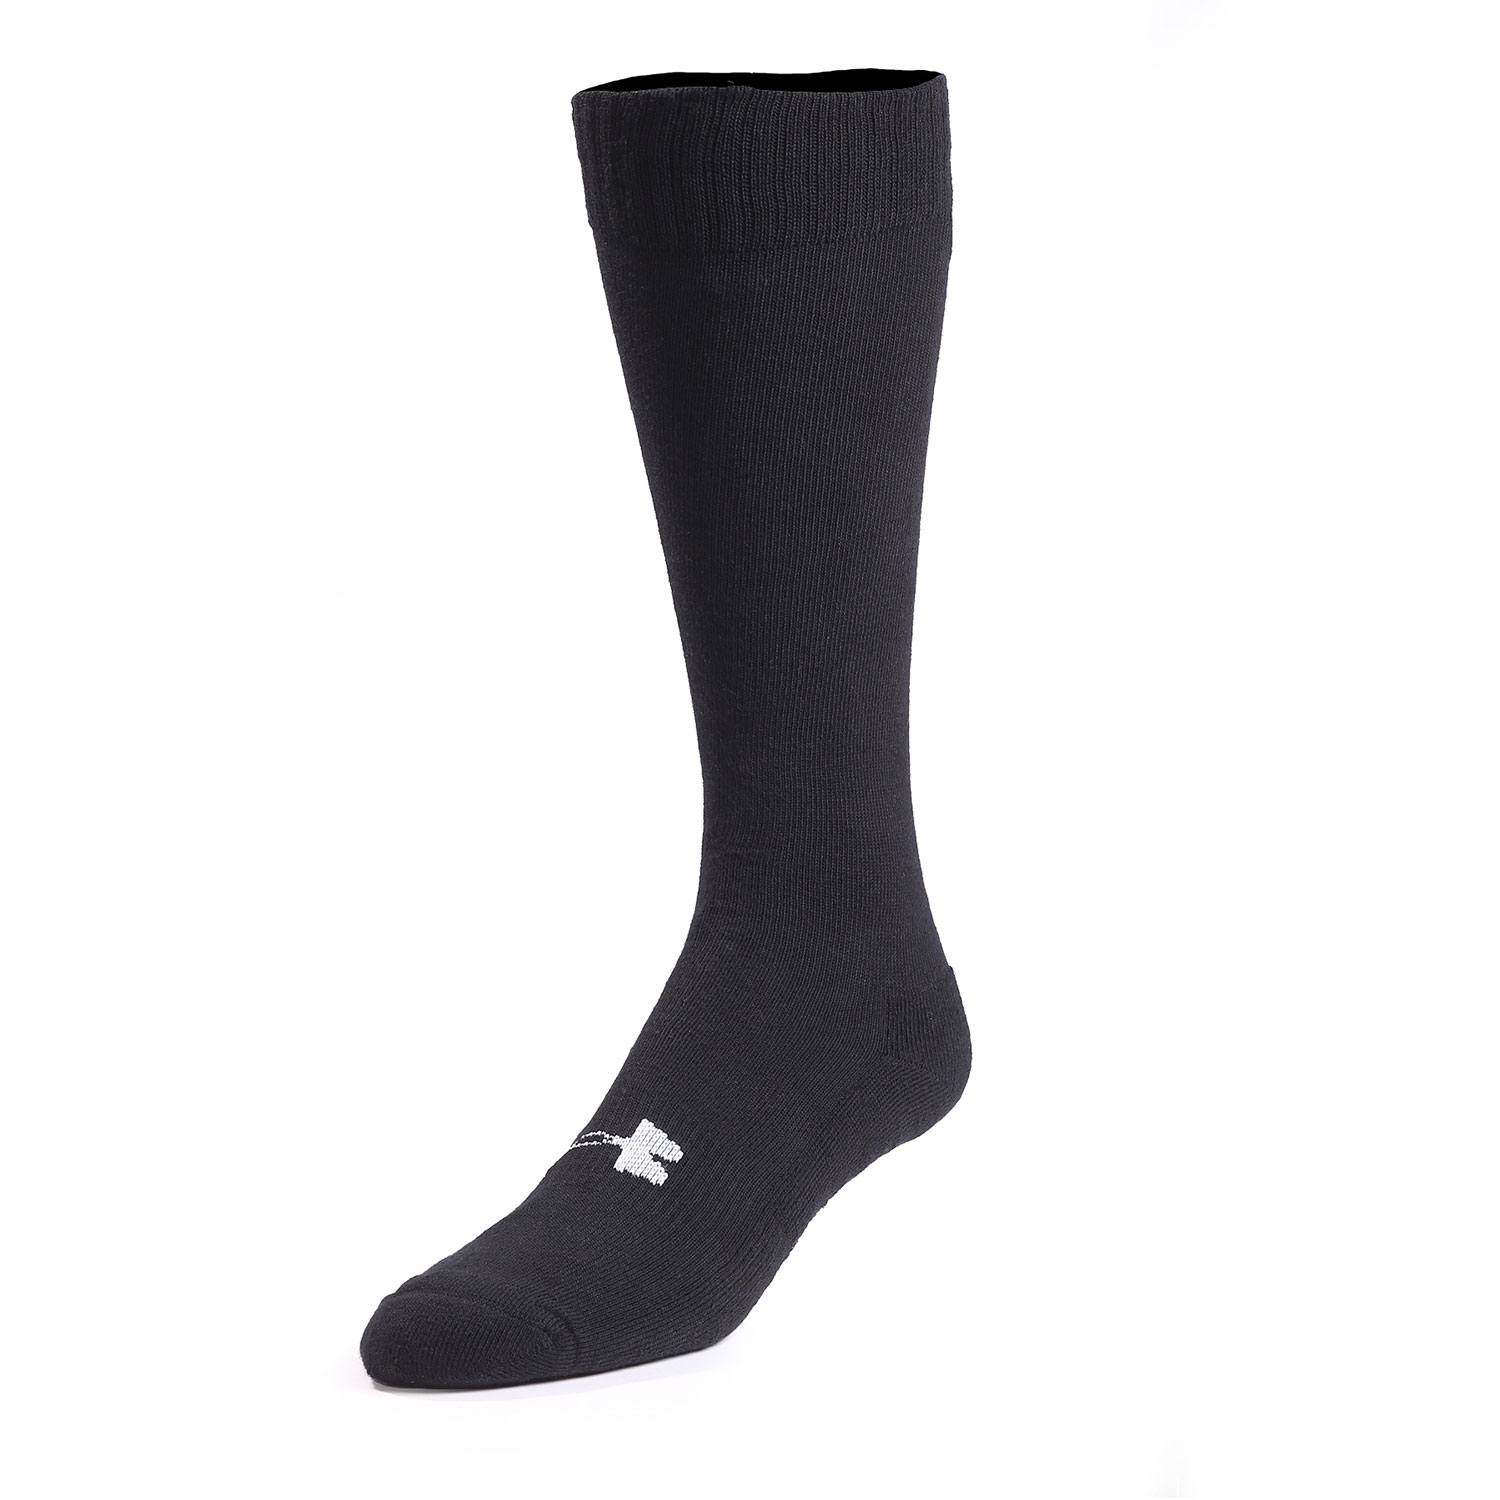 Under Armour Tactical HeatGear Over The Calf Socks